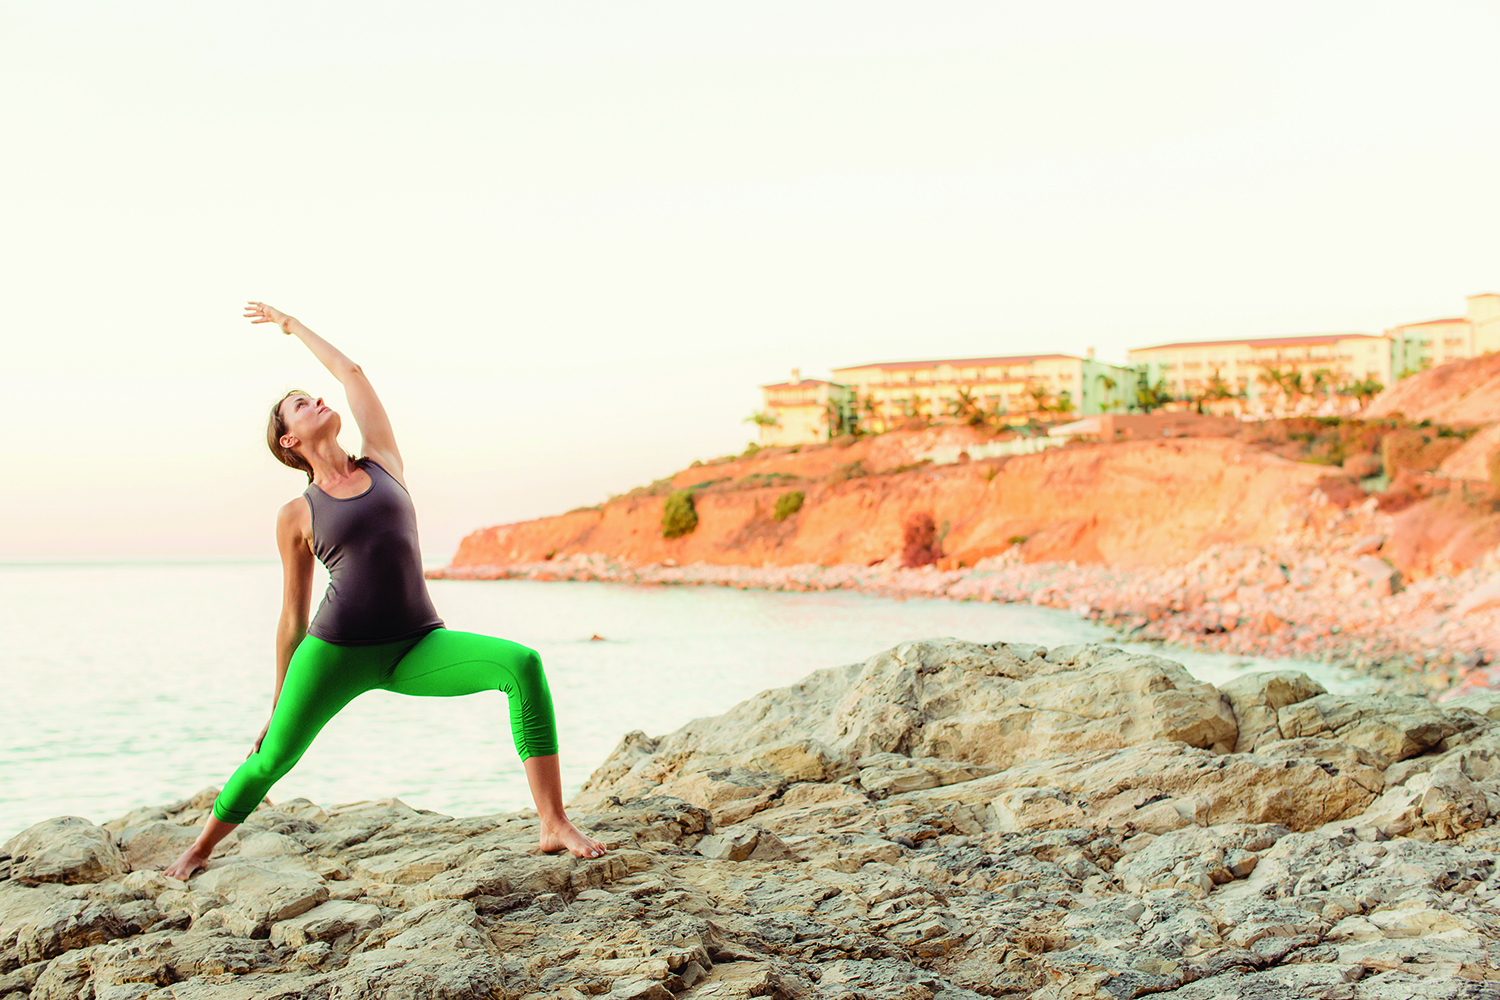 The Immersive Wellness Retreat includes optional full moon yoga on the resort's Ocean Lawn.